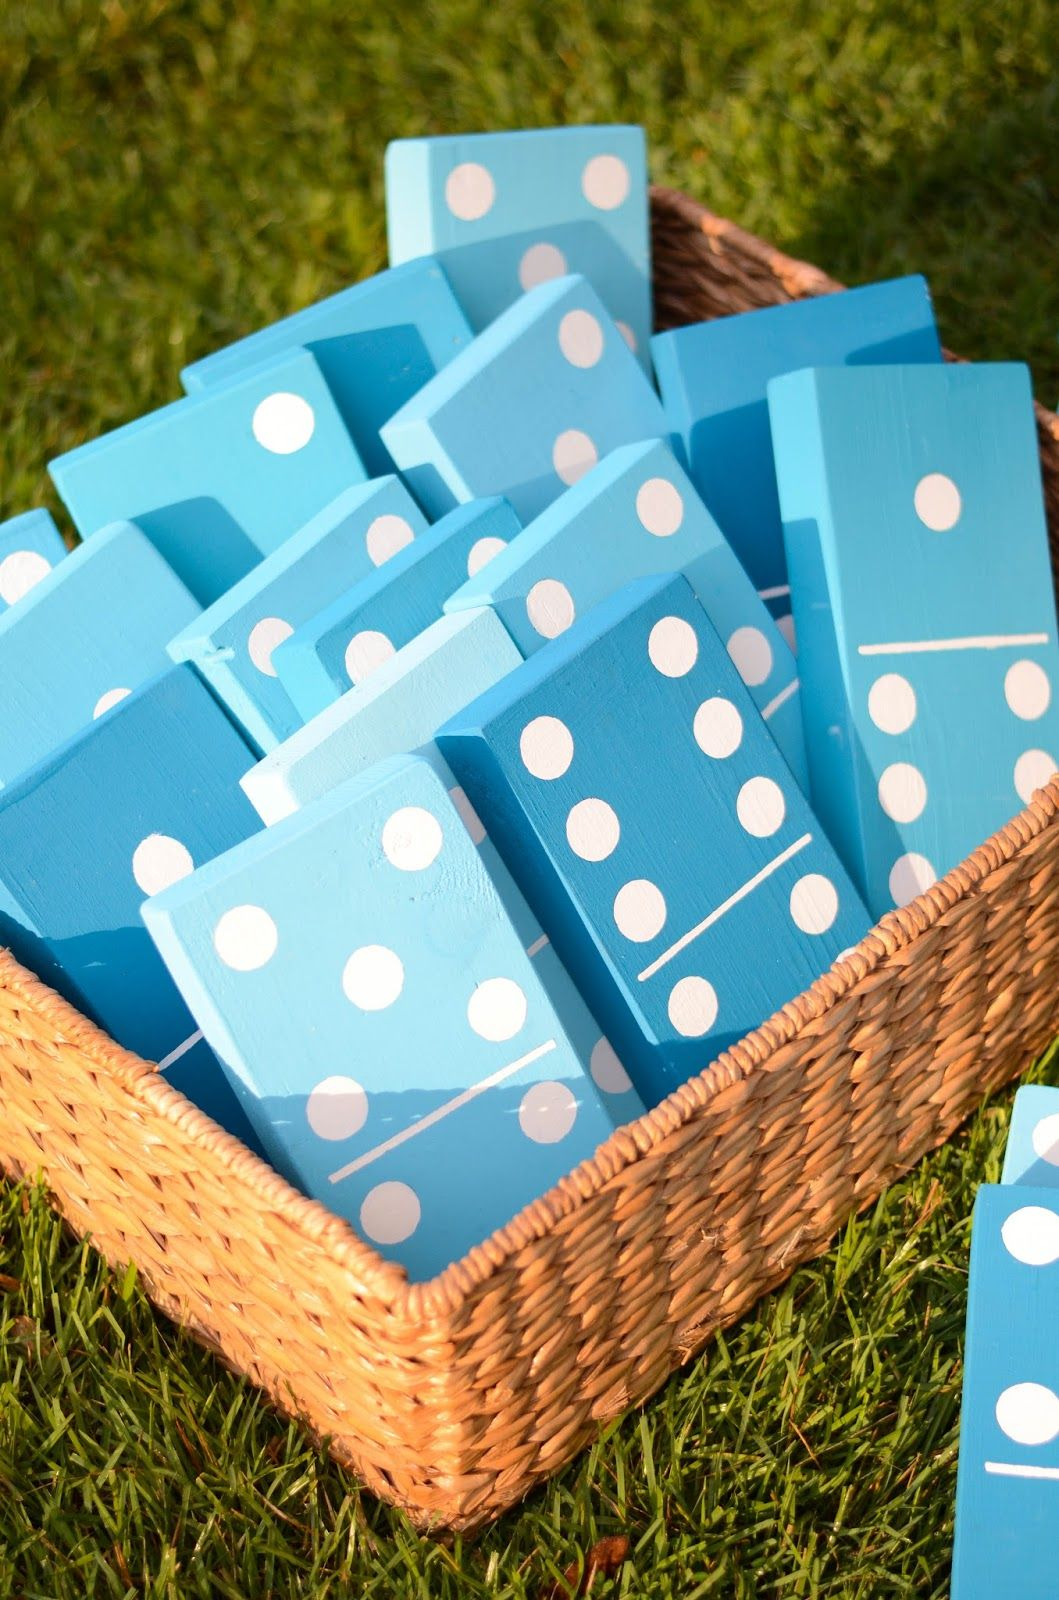 25 Diy Yard Games Outdoors Pinterest Juego Juegos Gigantes Y